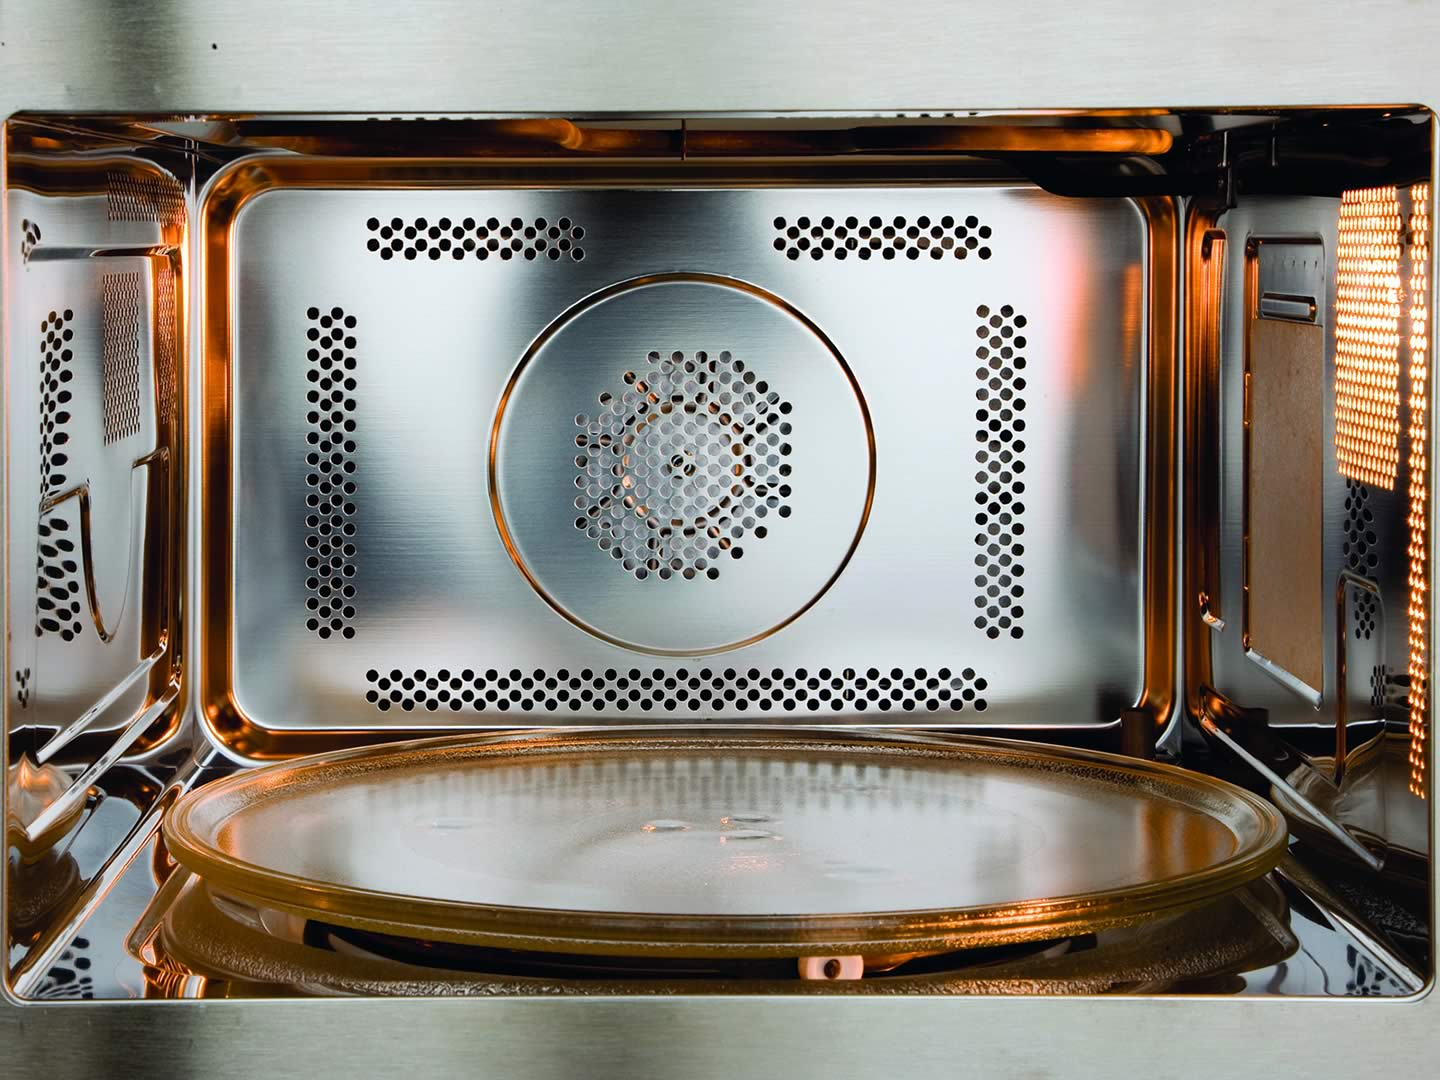 built in combination microwave oven